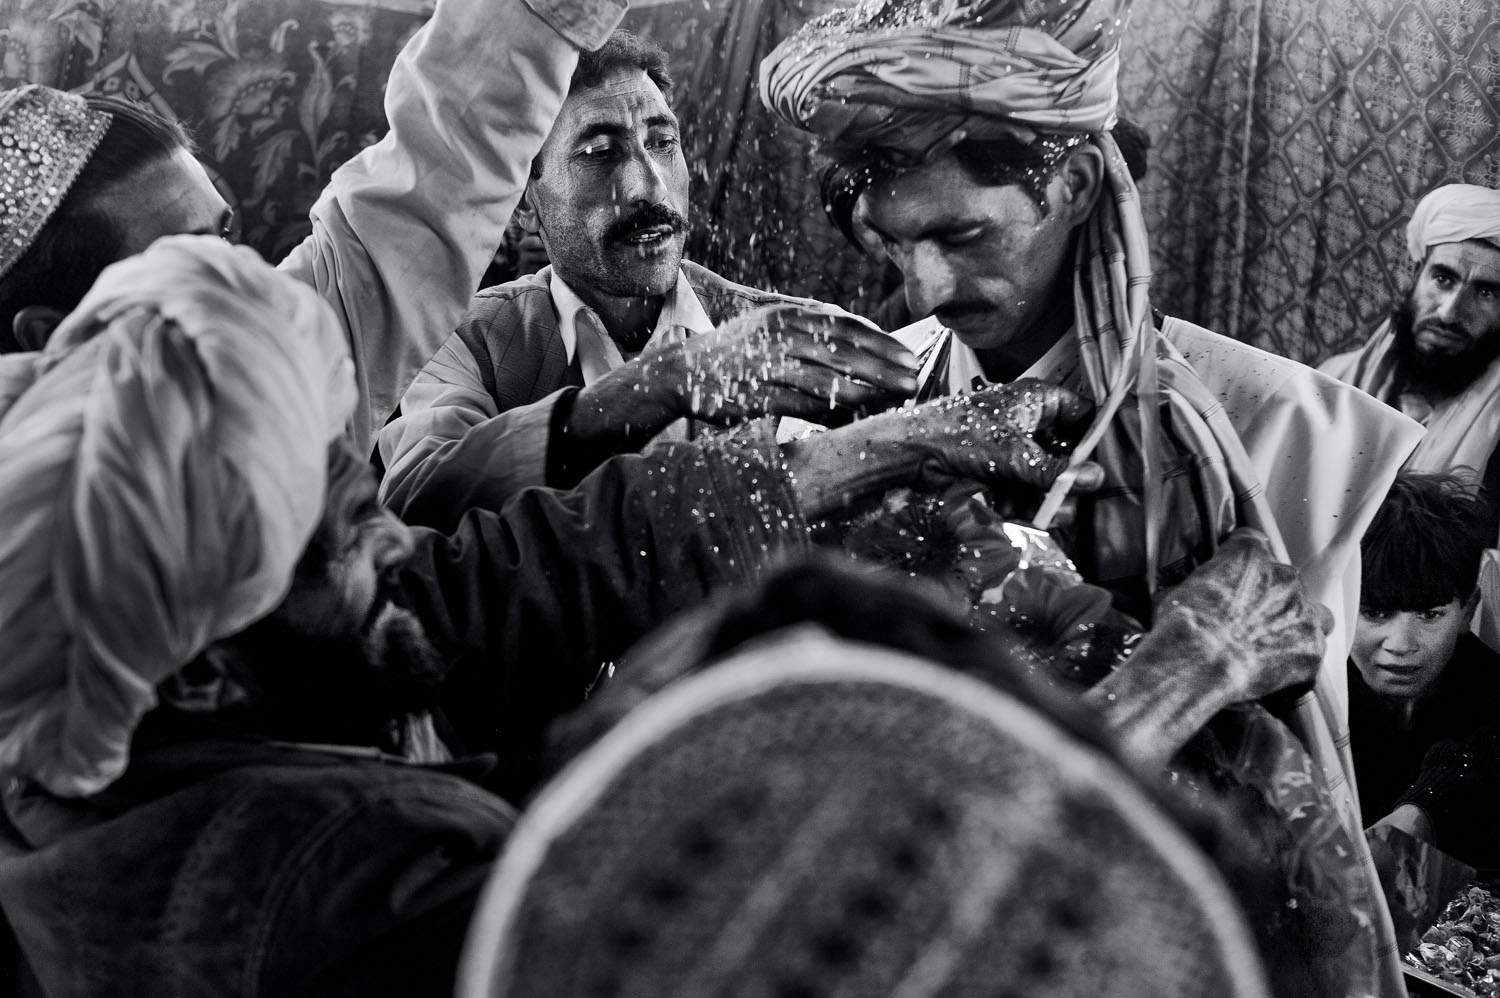 Kuchi nomads. Kabul, Afghanistan. 2012. Photo by Monika Bulaj.